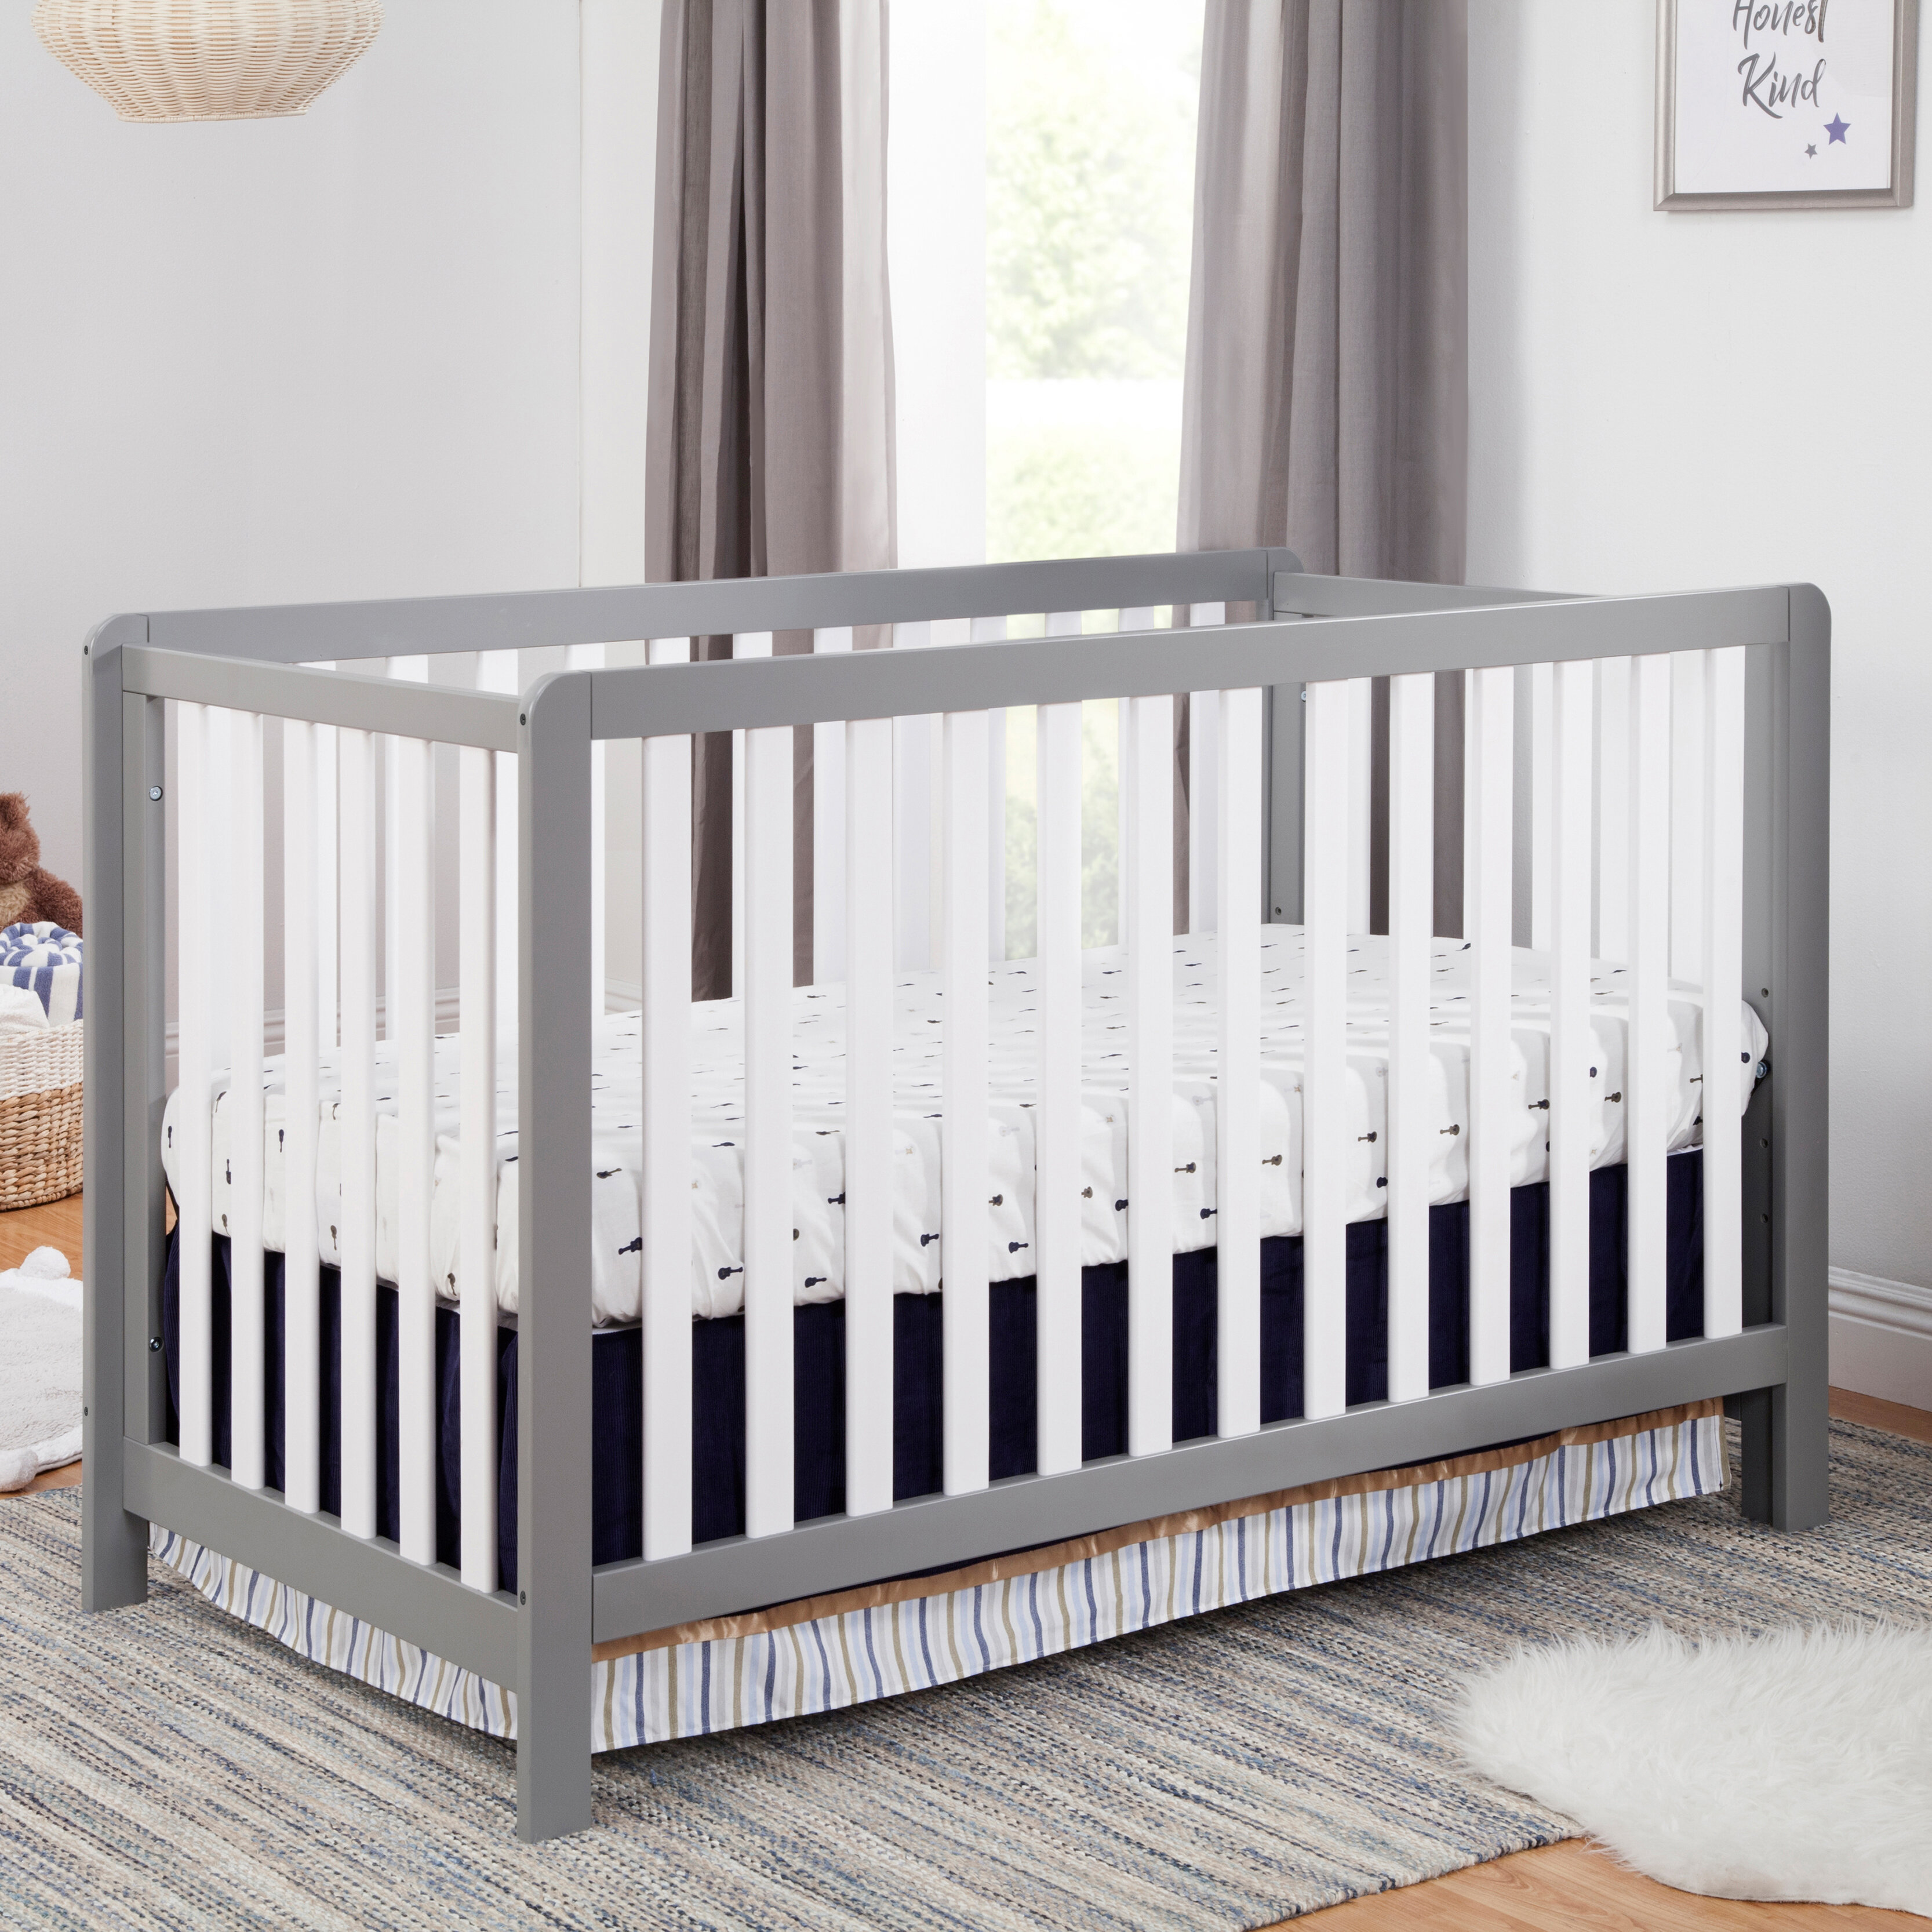 Washed Natural Carters by Davinci Colby 4-in-1 Convertible Crib